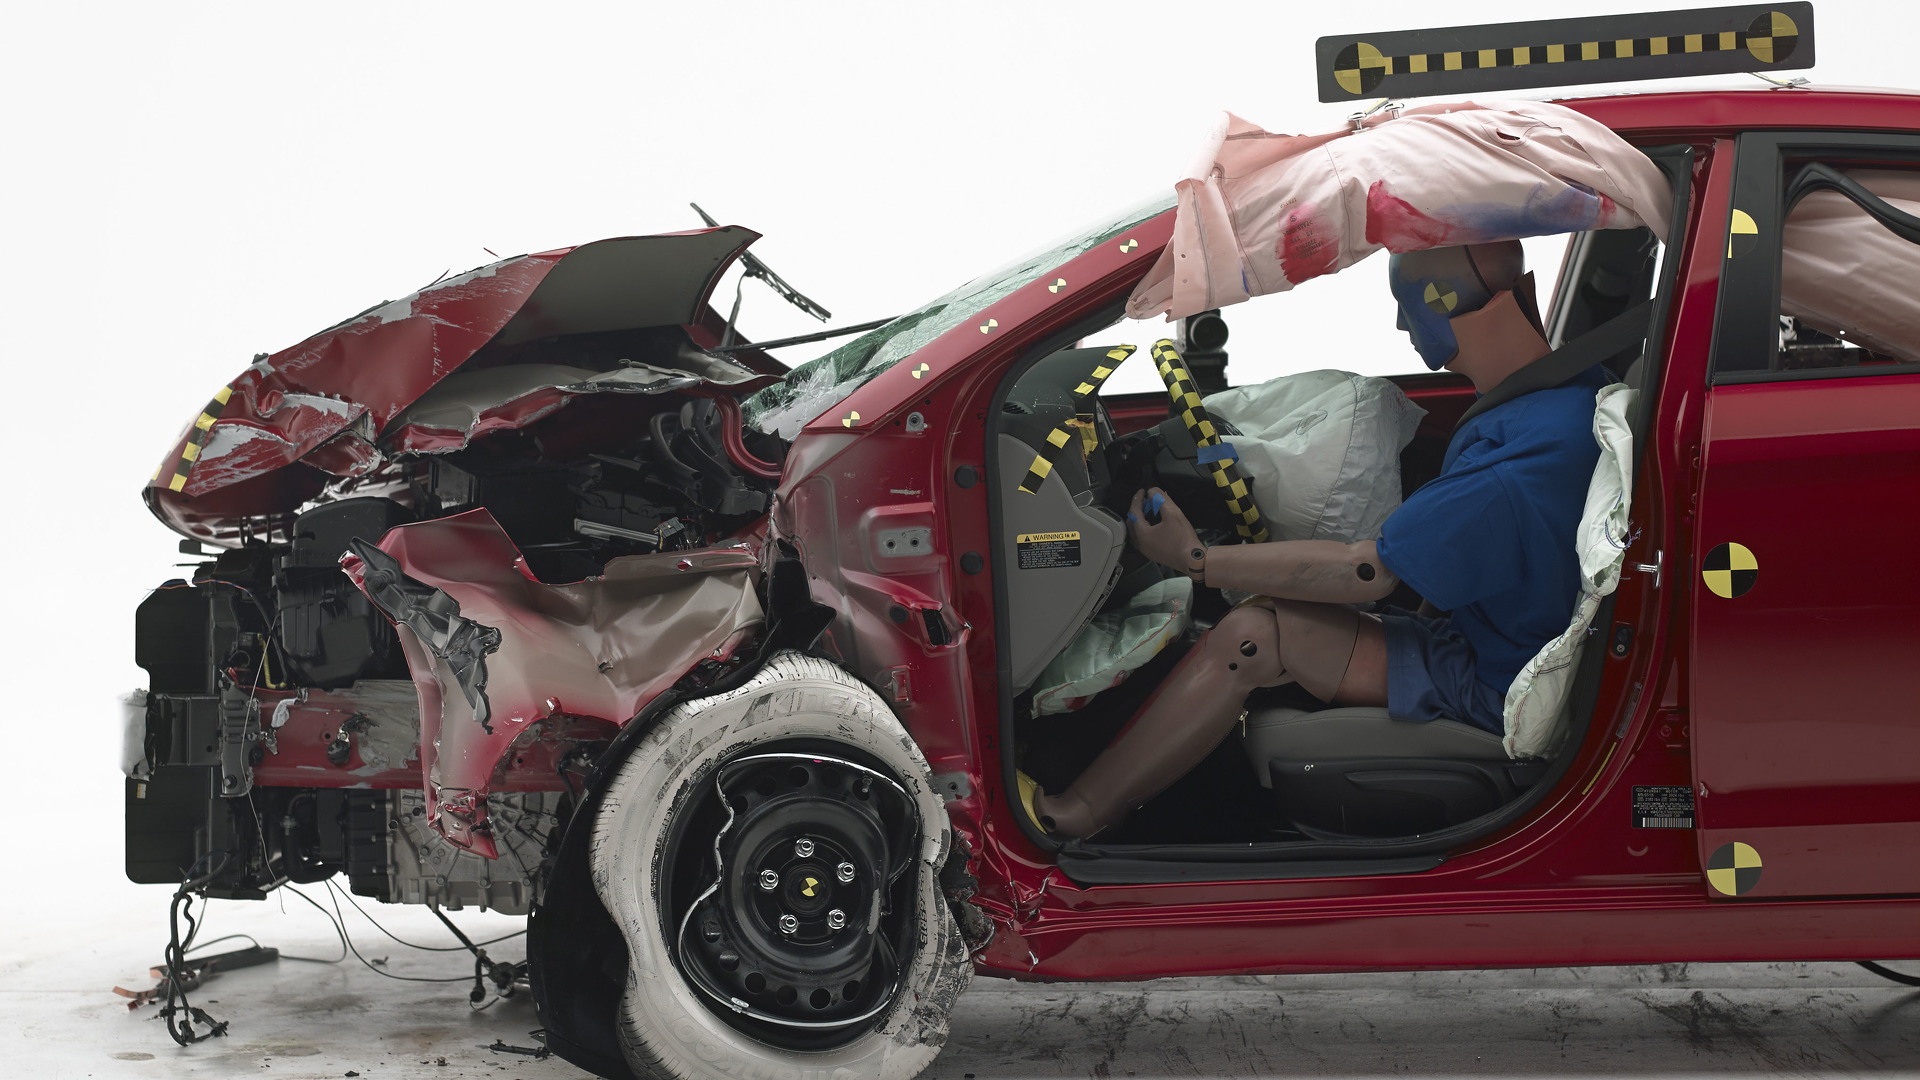 U.S. motor vehicle deaths up 9 percent in first half of 2016